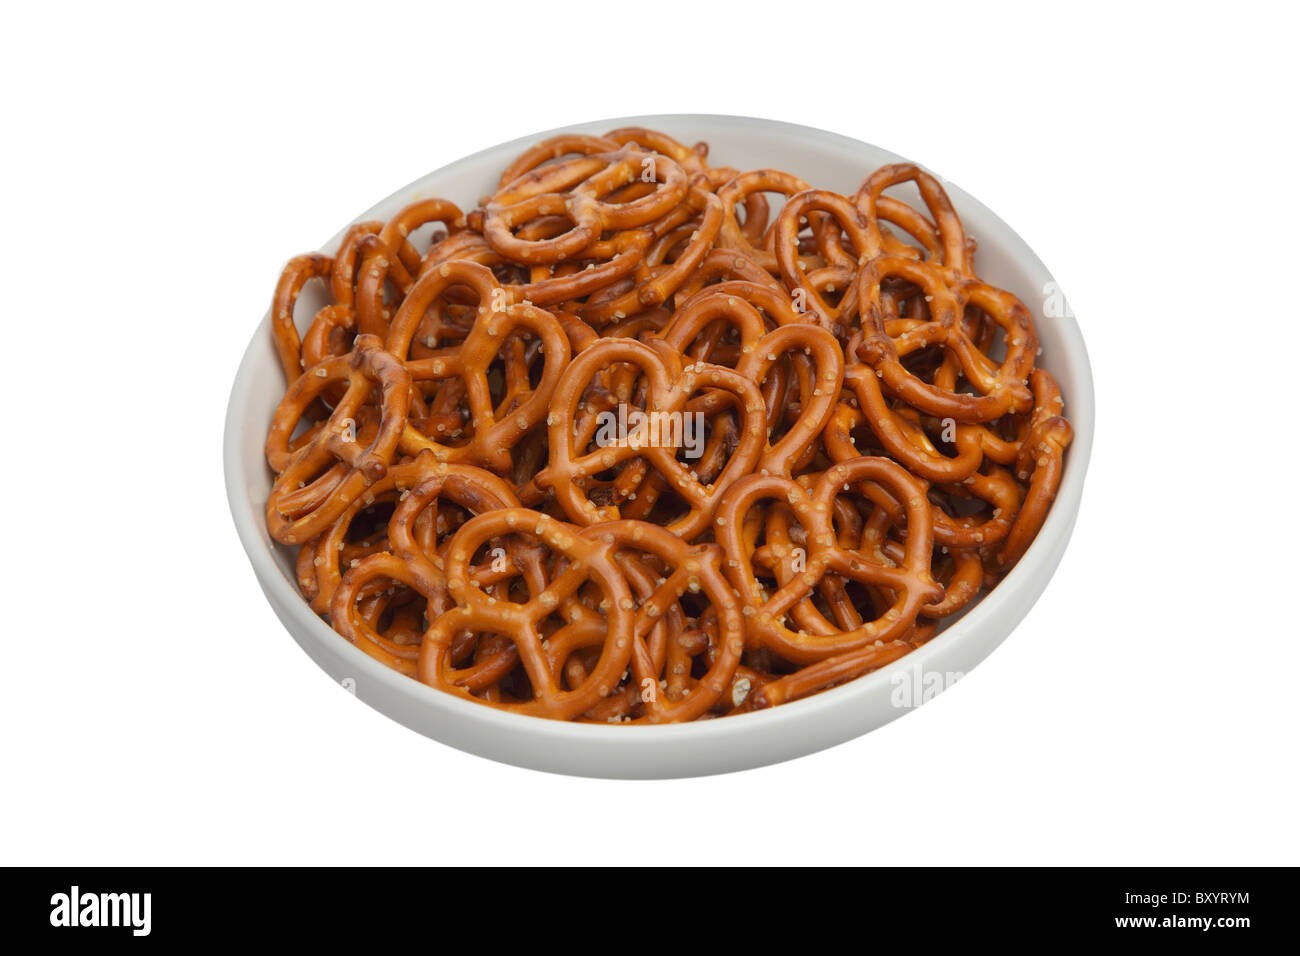 Pretzels in bowl on white background - Stock Image